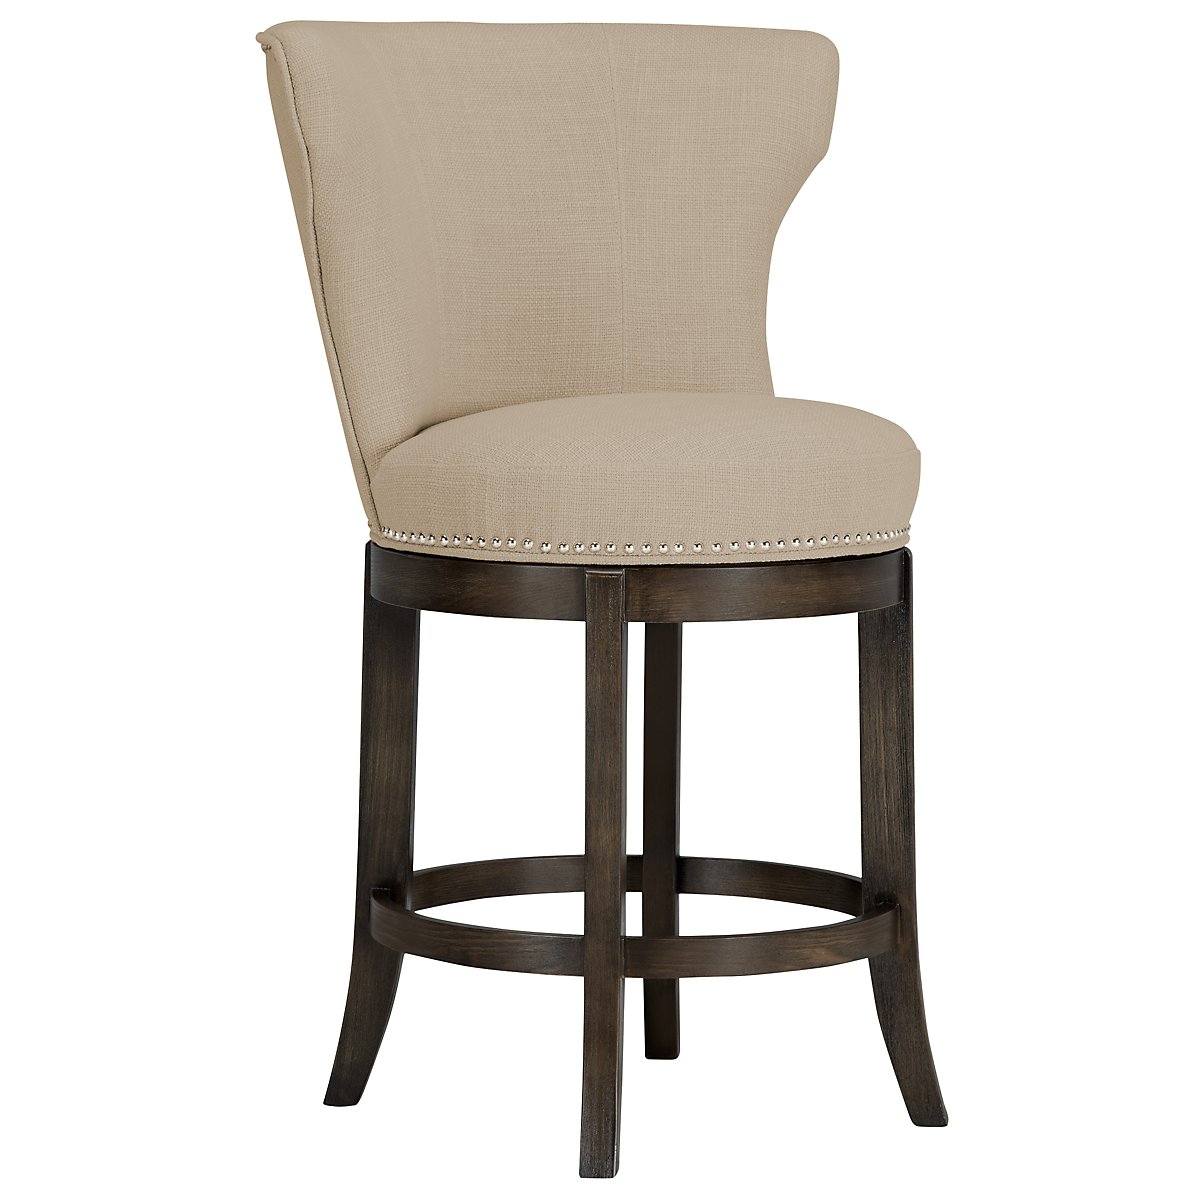 "Cayden Taupe Fabric 24"" Swivel Barstool"